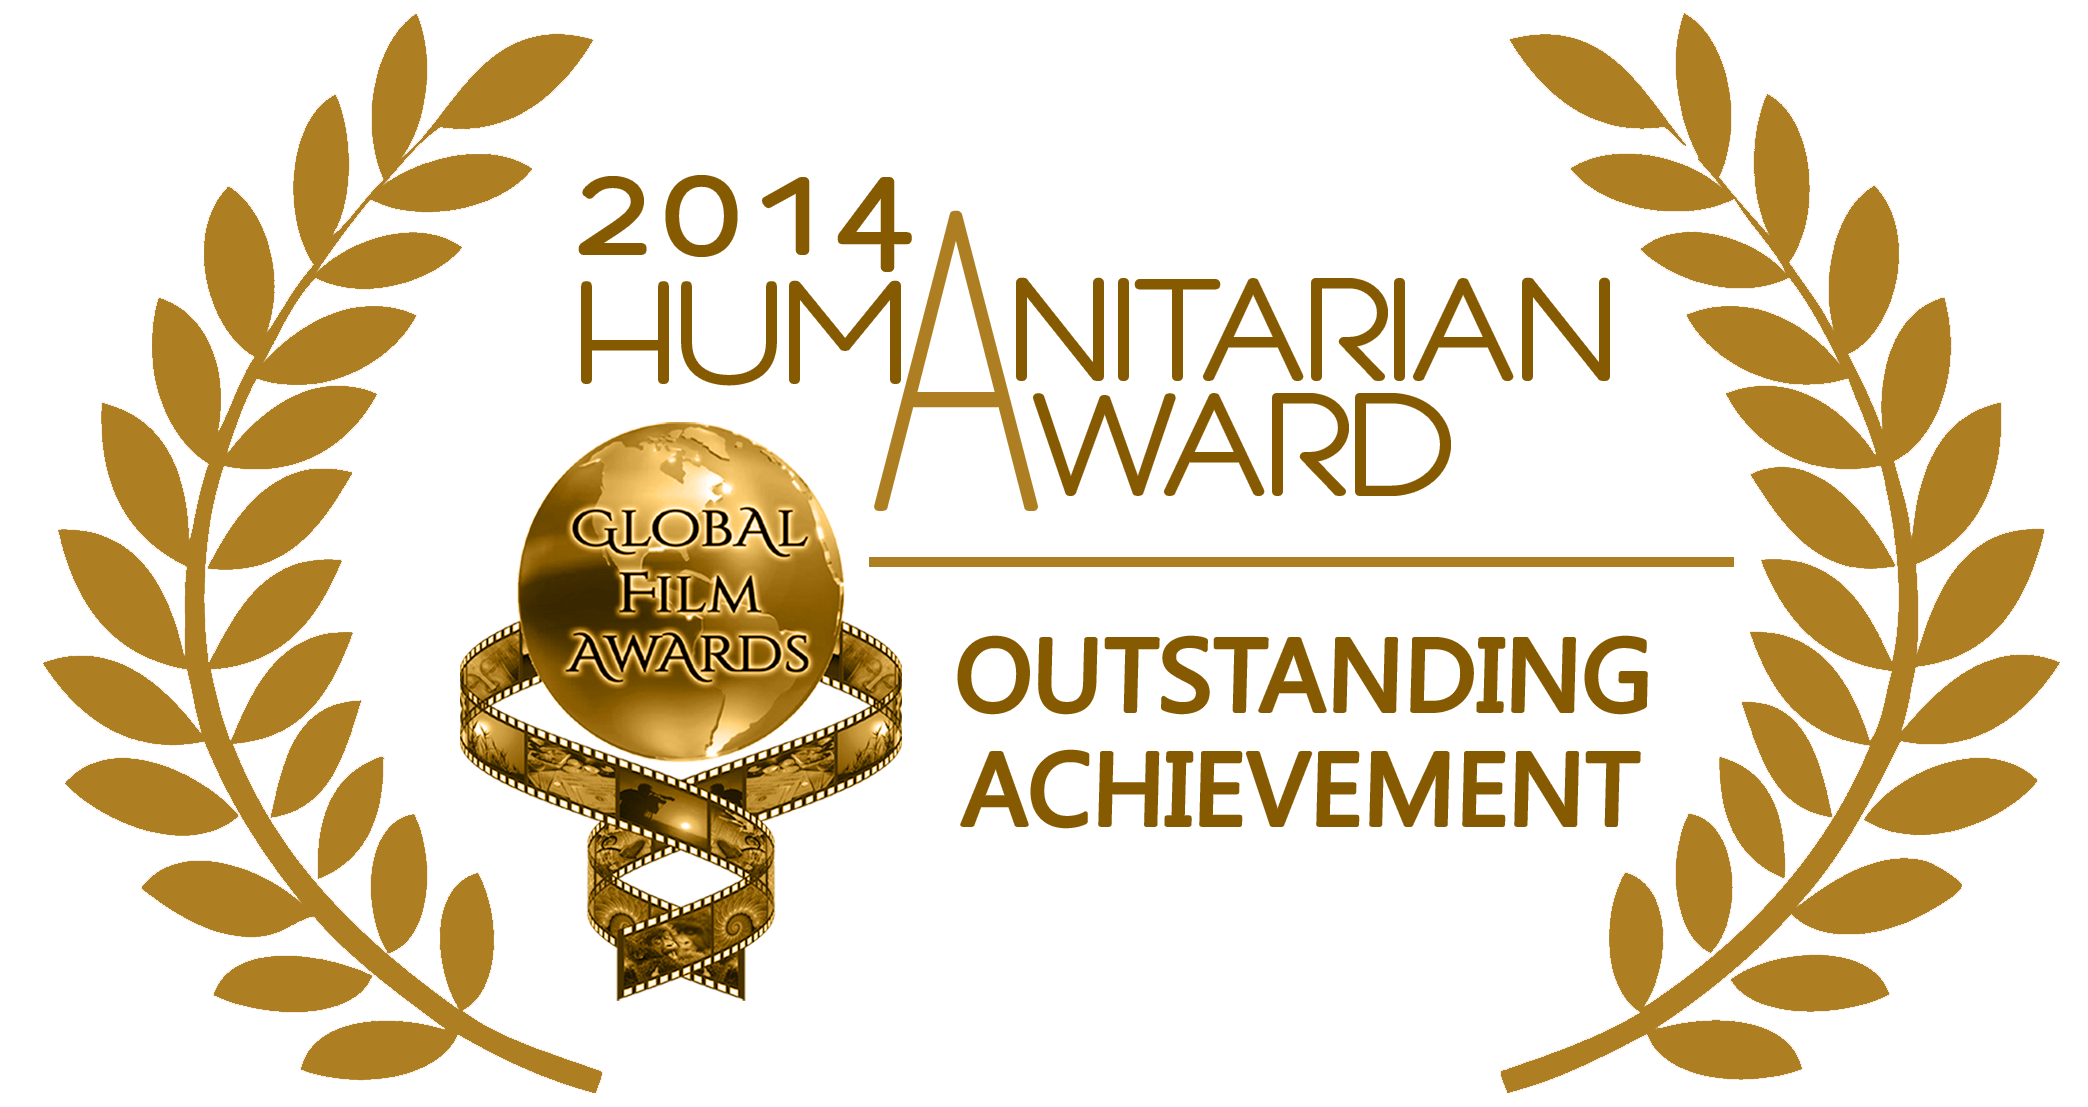 2014 Global Film Awards (Humanitarian Award): Outstanding Achievement